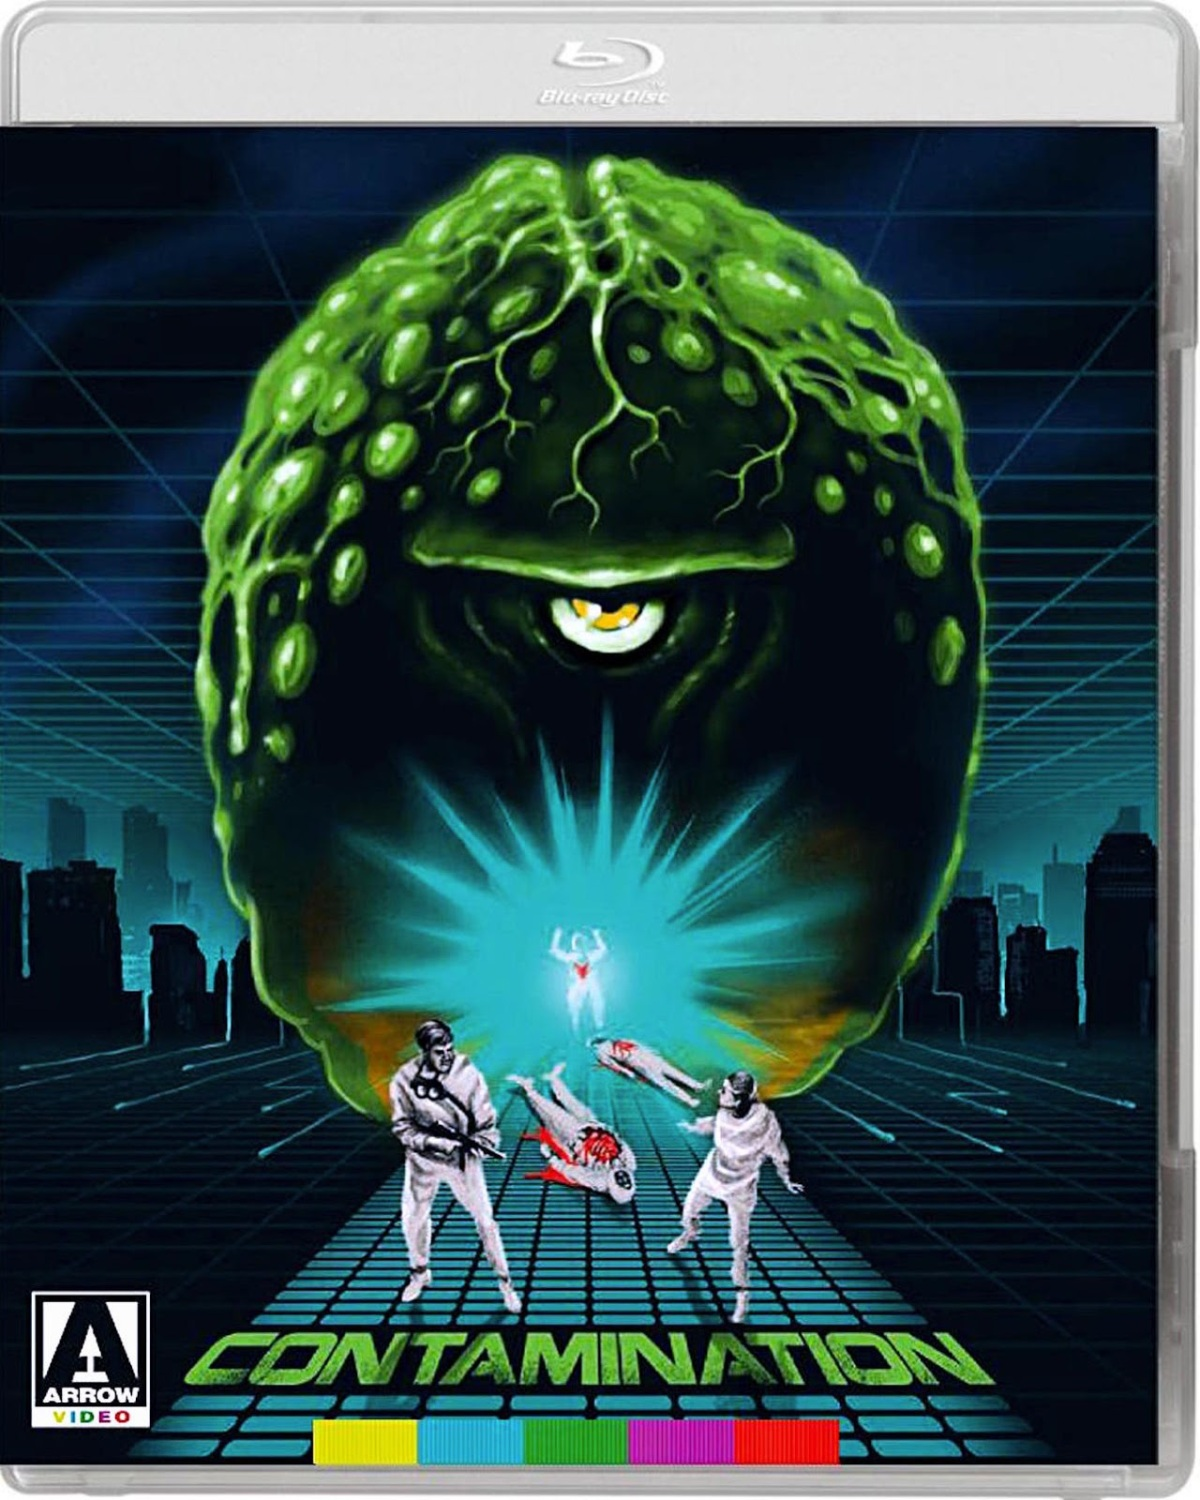 Contamination dvd cover